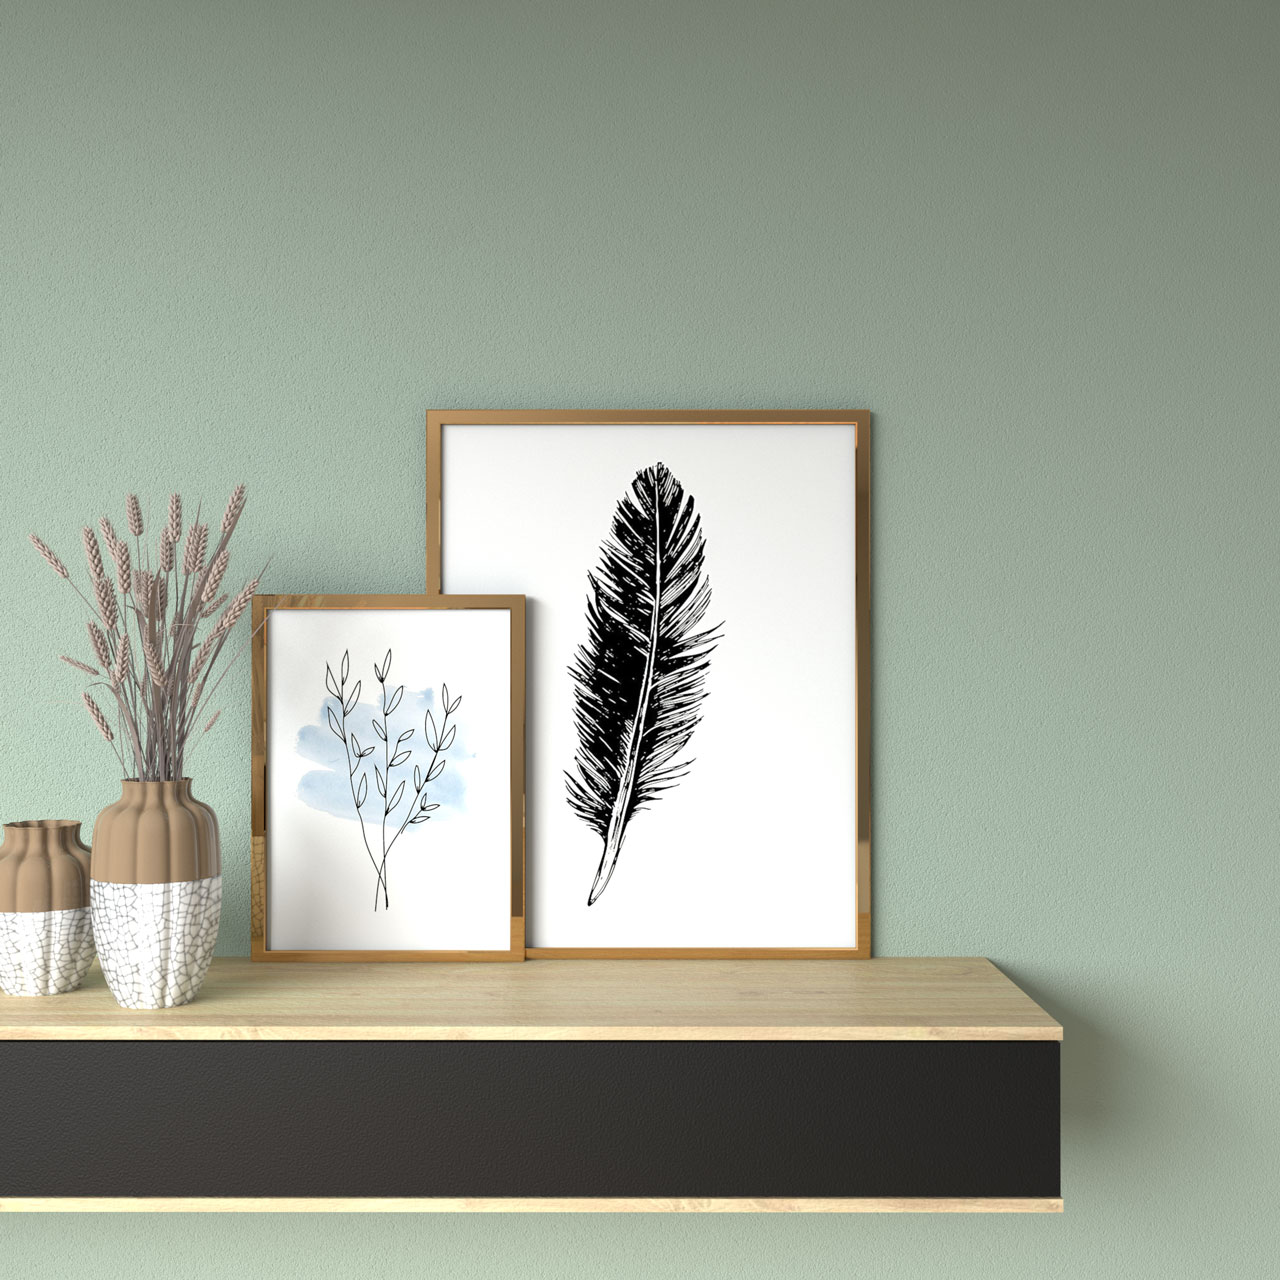 Pale green wall with gold framed artworks